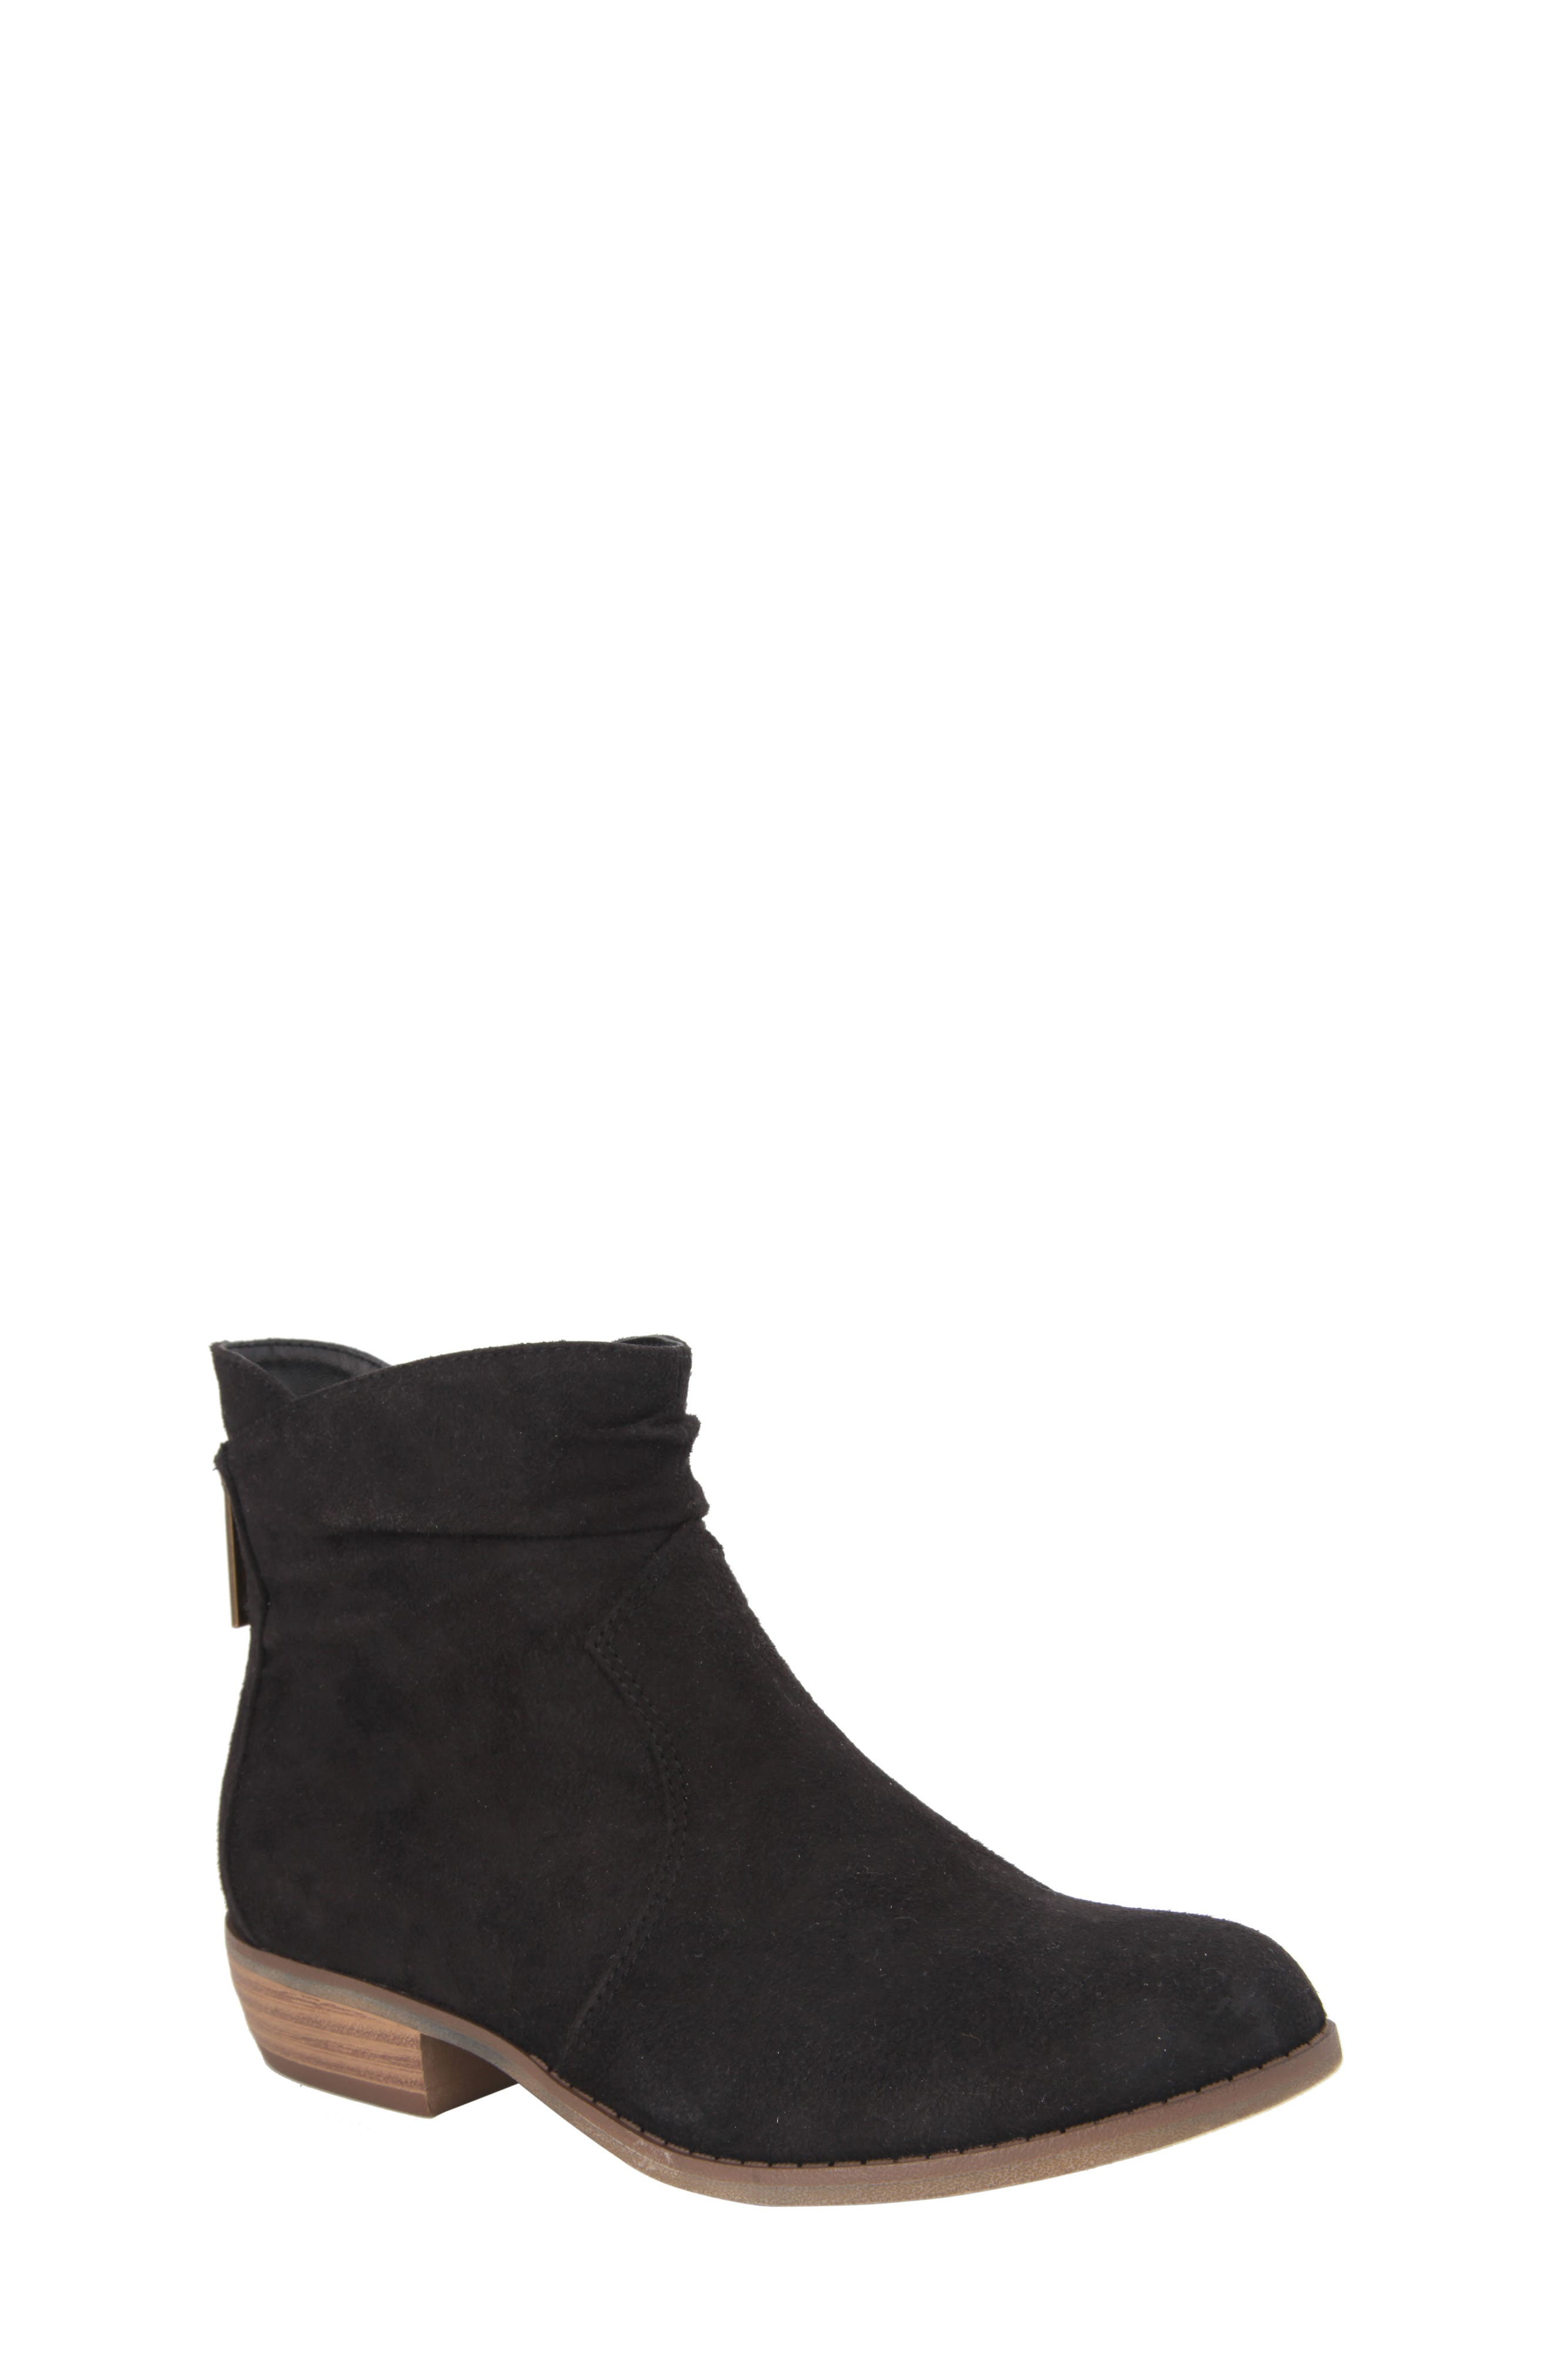 Delia Slightly Slouchy Bootie,                             Main thumbnail 1, color,                             003